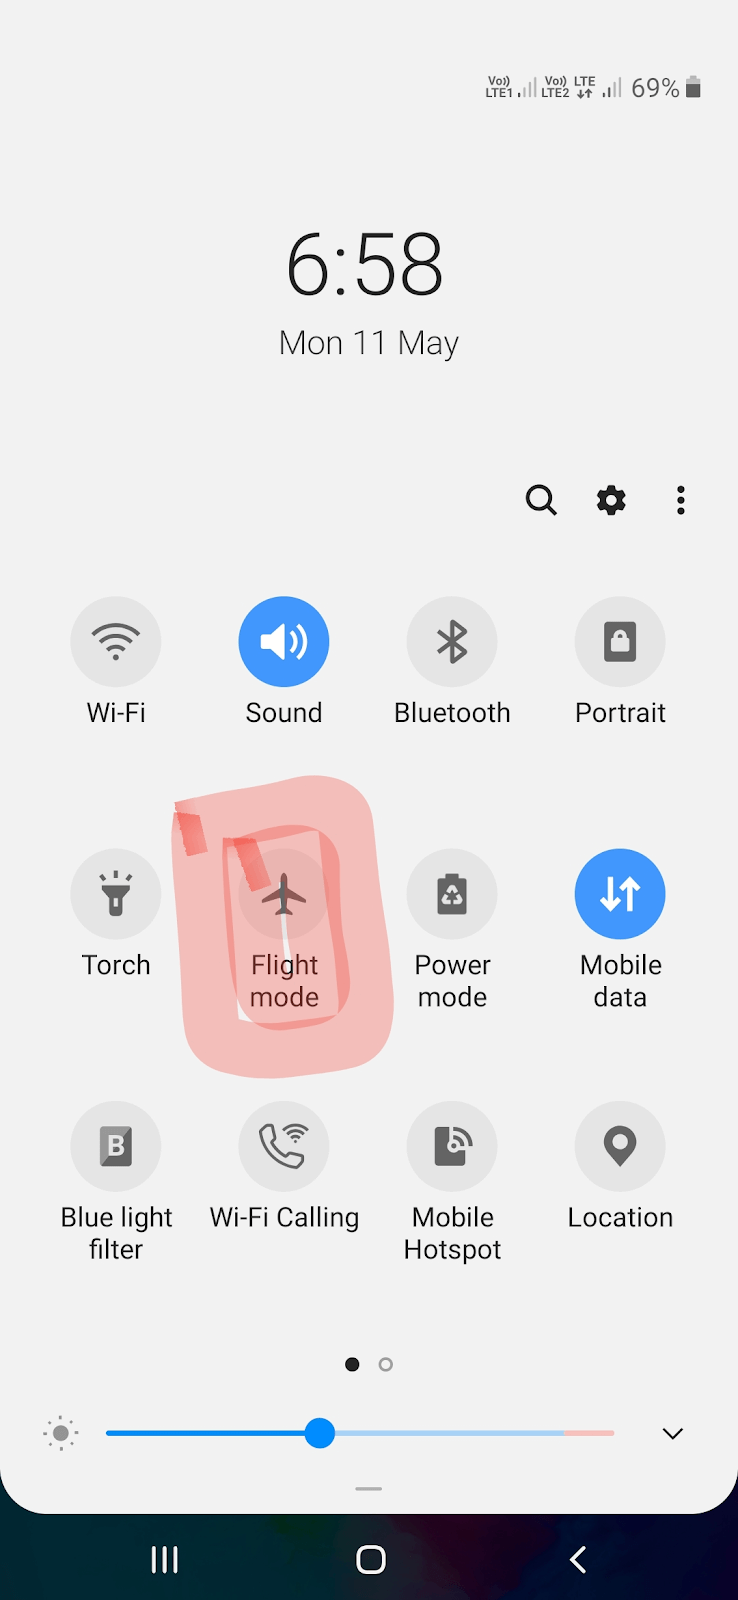 Android Isn't Letting Me Connect to Wi-Fi